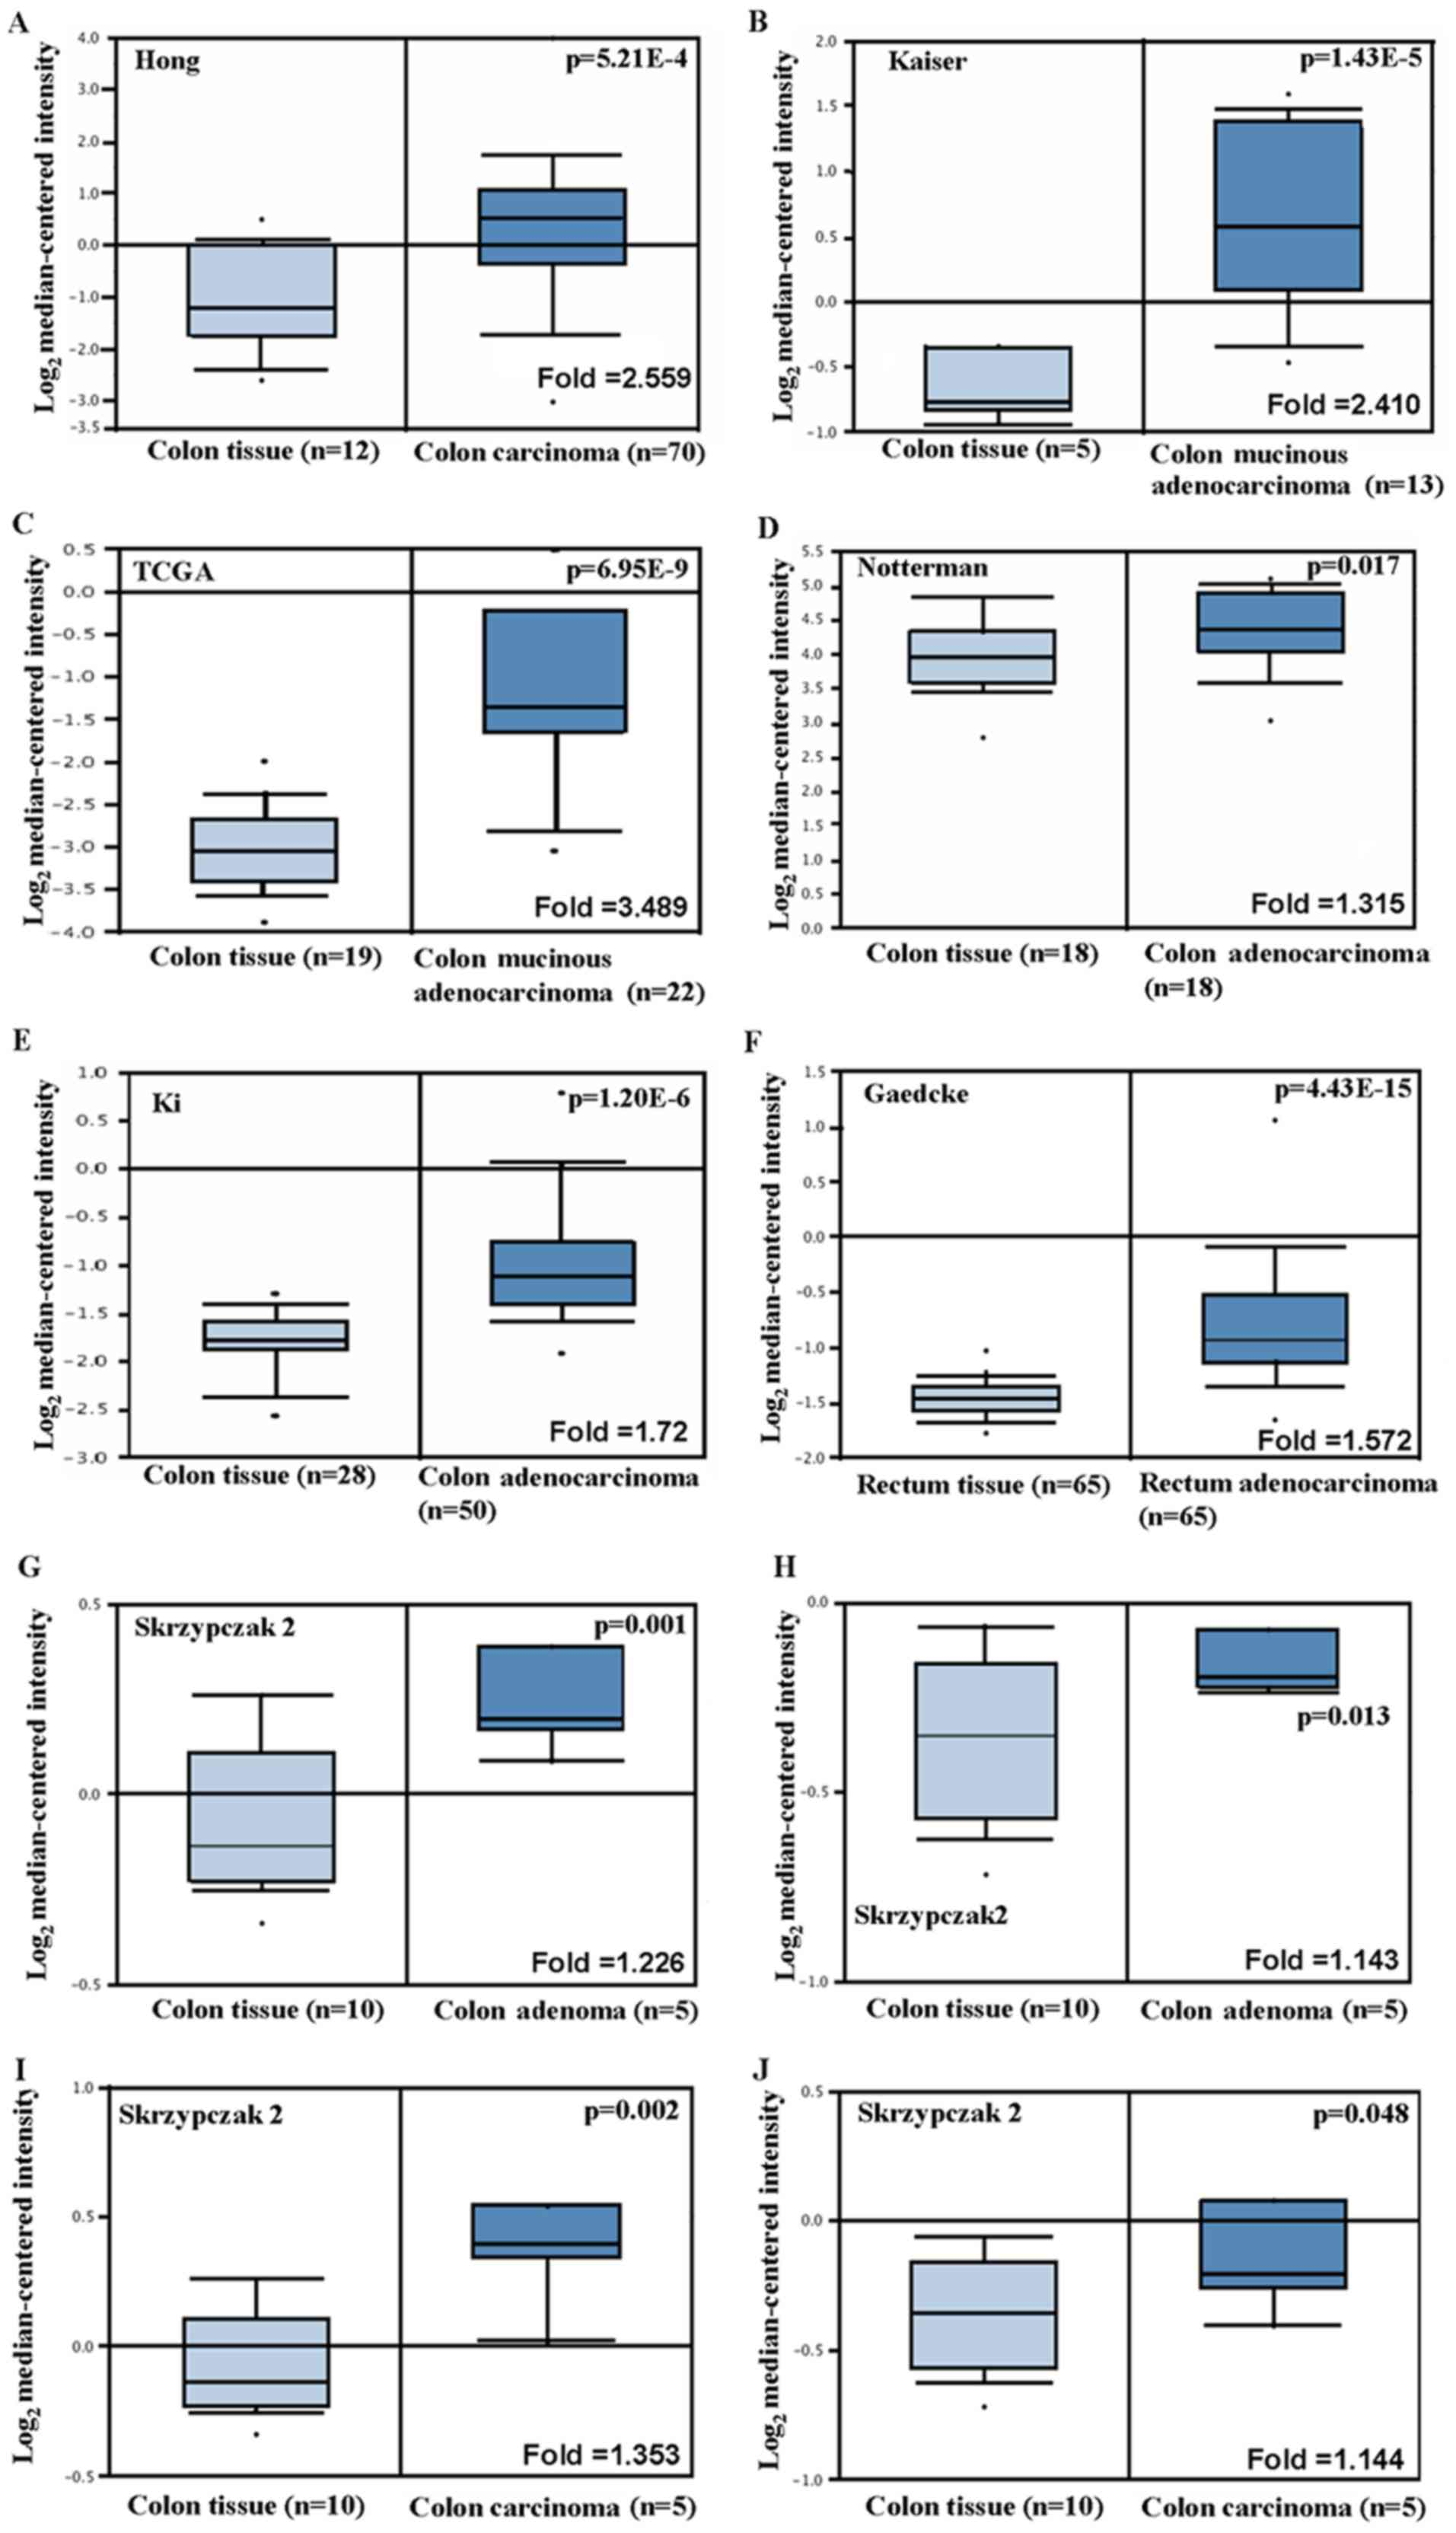 Roles Of Fascin Mrna Expression In Colorectal Cancer Meta Analysis And Bioinformatics Analysis